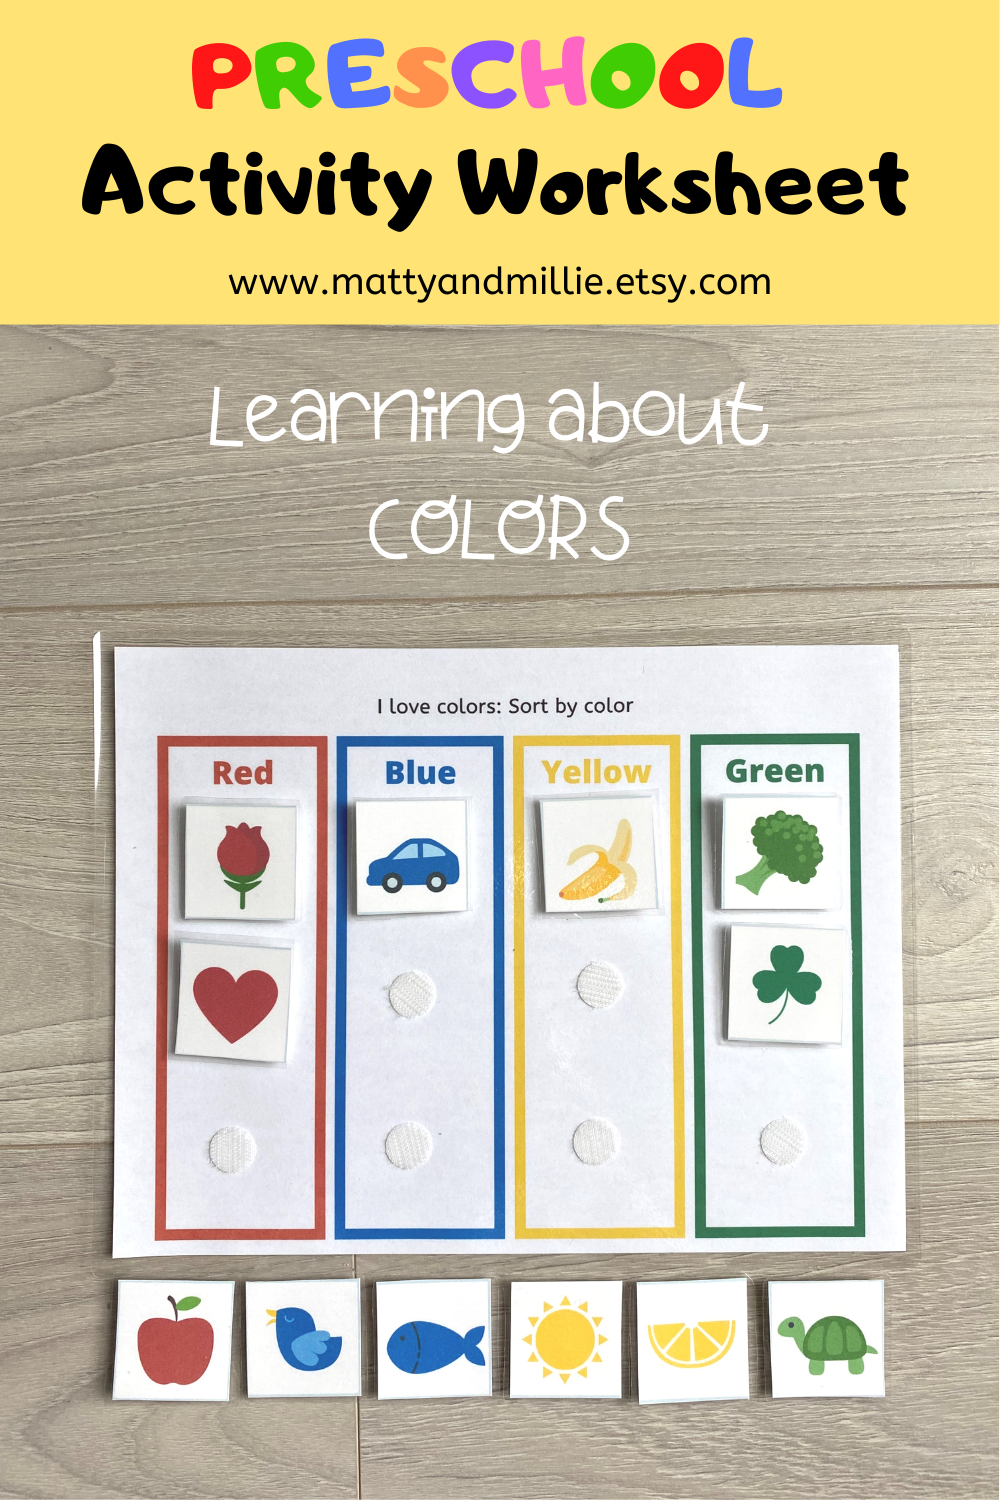 Sort By Color Worksheet Busy Book Pages Preschool Busy Book Sorting Activity File Folder Game Busy Binder Homeschool Worksheet Busy Book Homeschool Worksheets Color Worksheets [ 1500 x 1000 Pixel ]